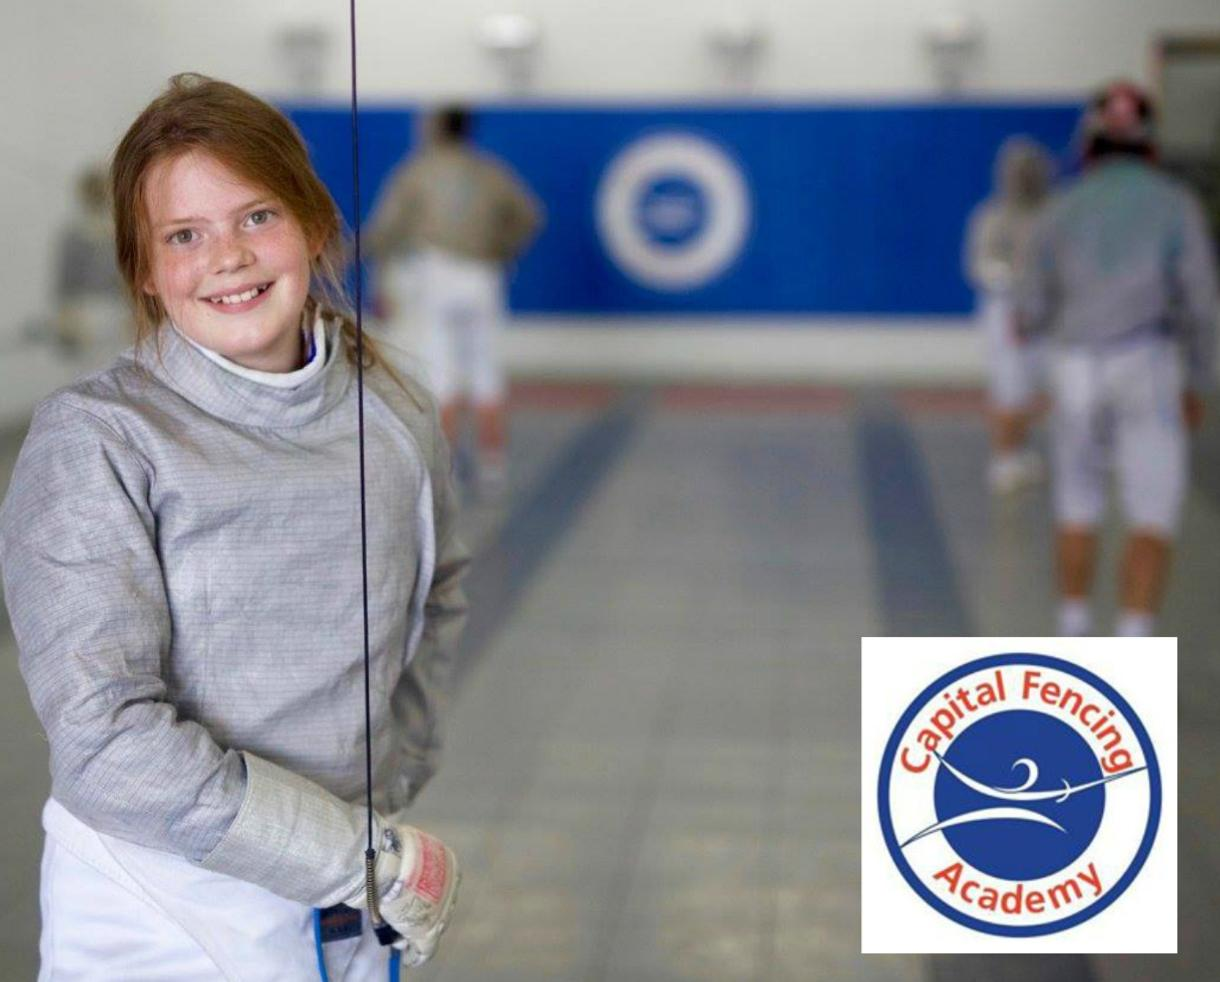 Deal Capital Fencing Academy Musketeer Fencing Camp